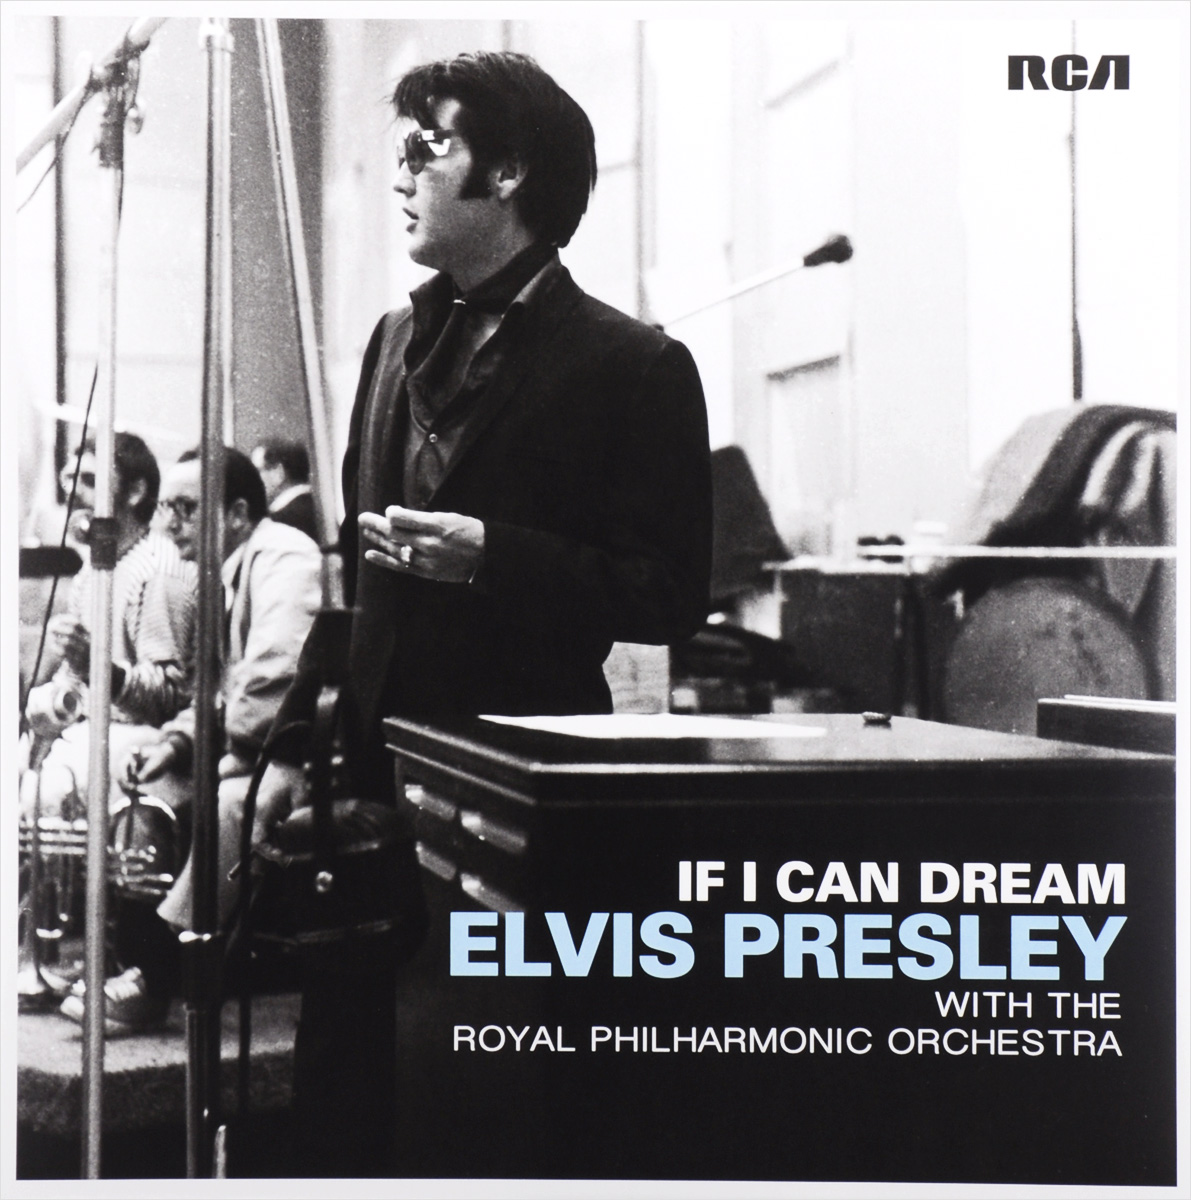 Элвис Пресли,The Royal Philharmonic Orchestra Elvis Presley With The Royal Philharmonic Orchestra. If I Can Dream (2 LP) chris botti live with orchestra